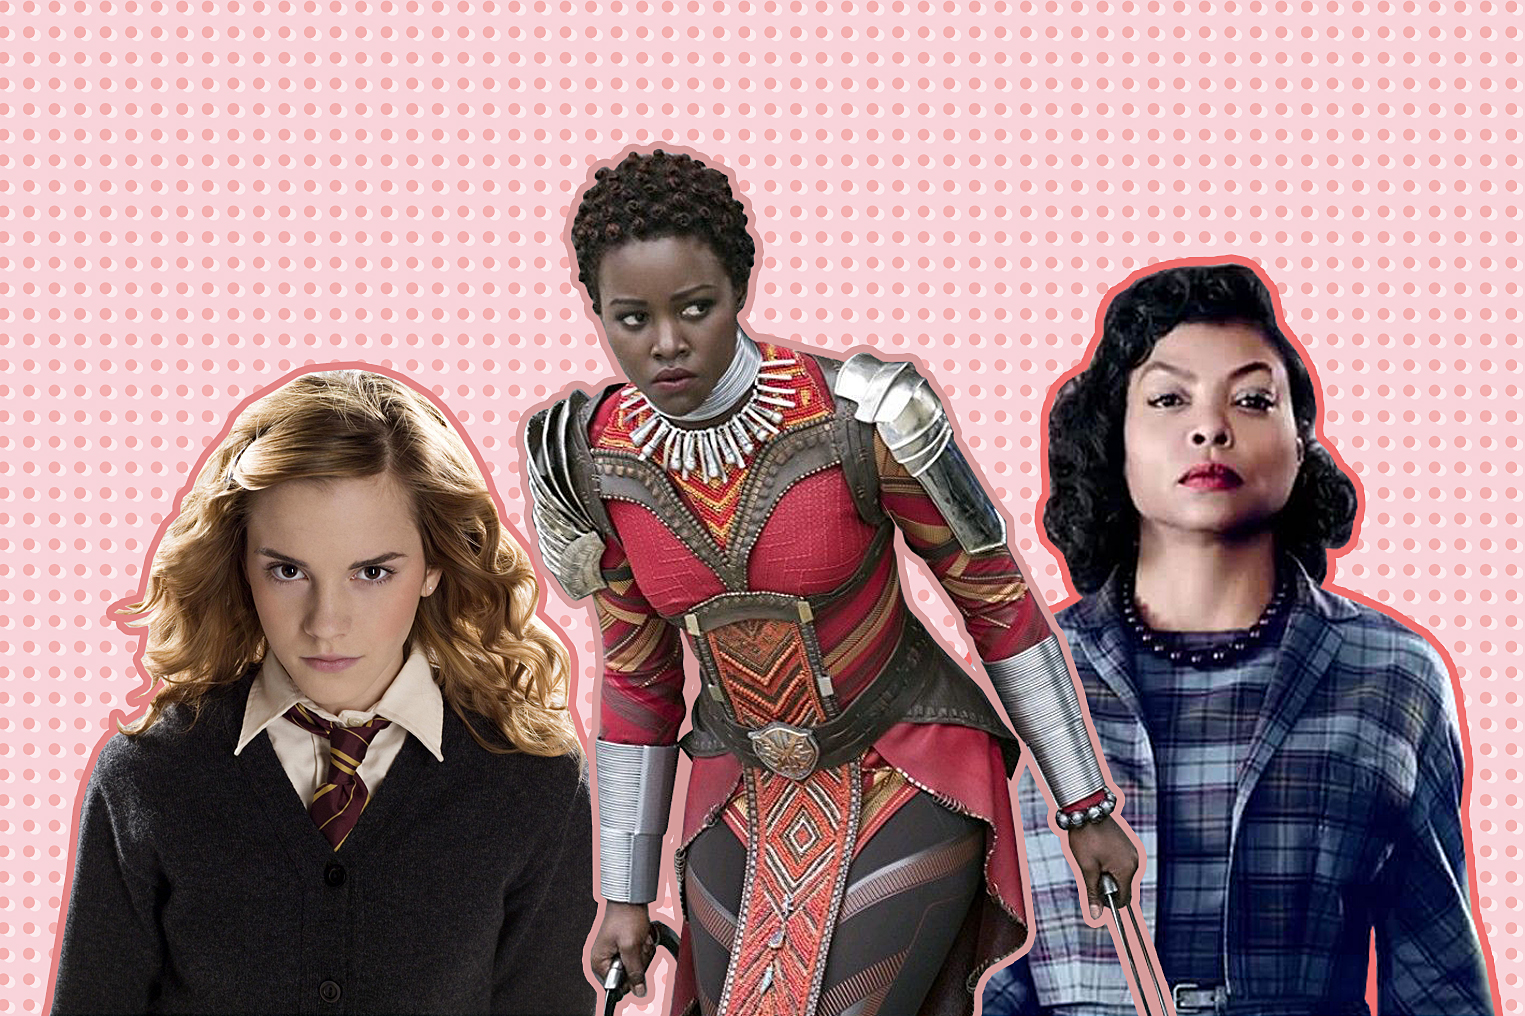 7 emotional benefits of watching strong women in film, according to experts